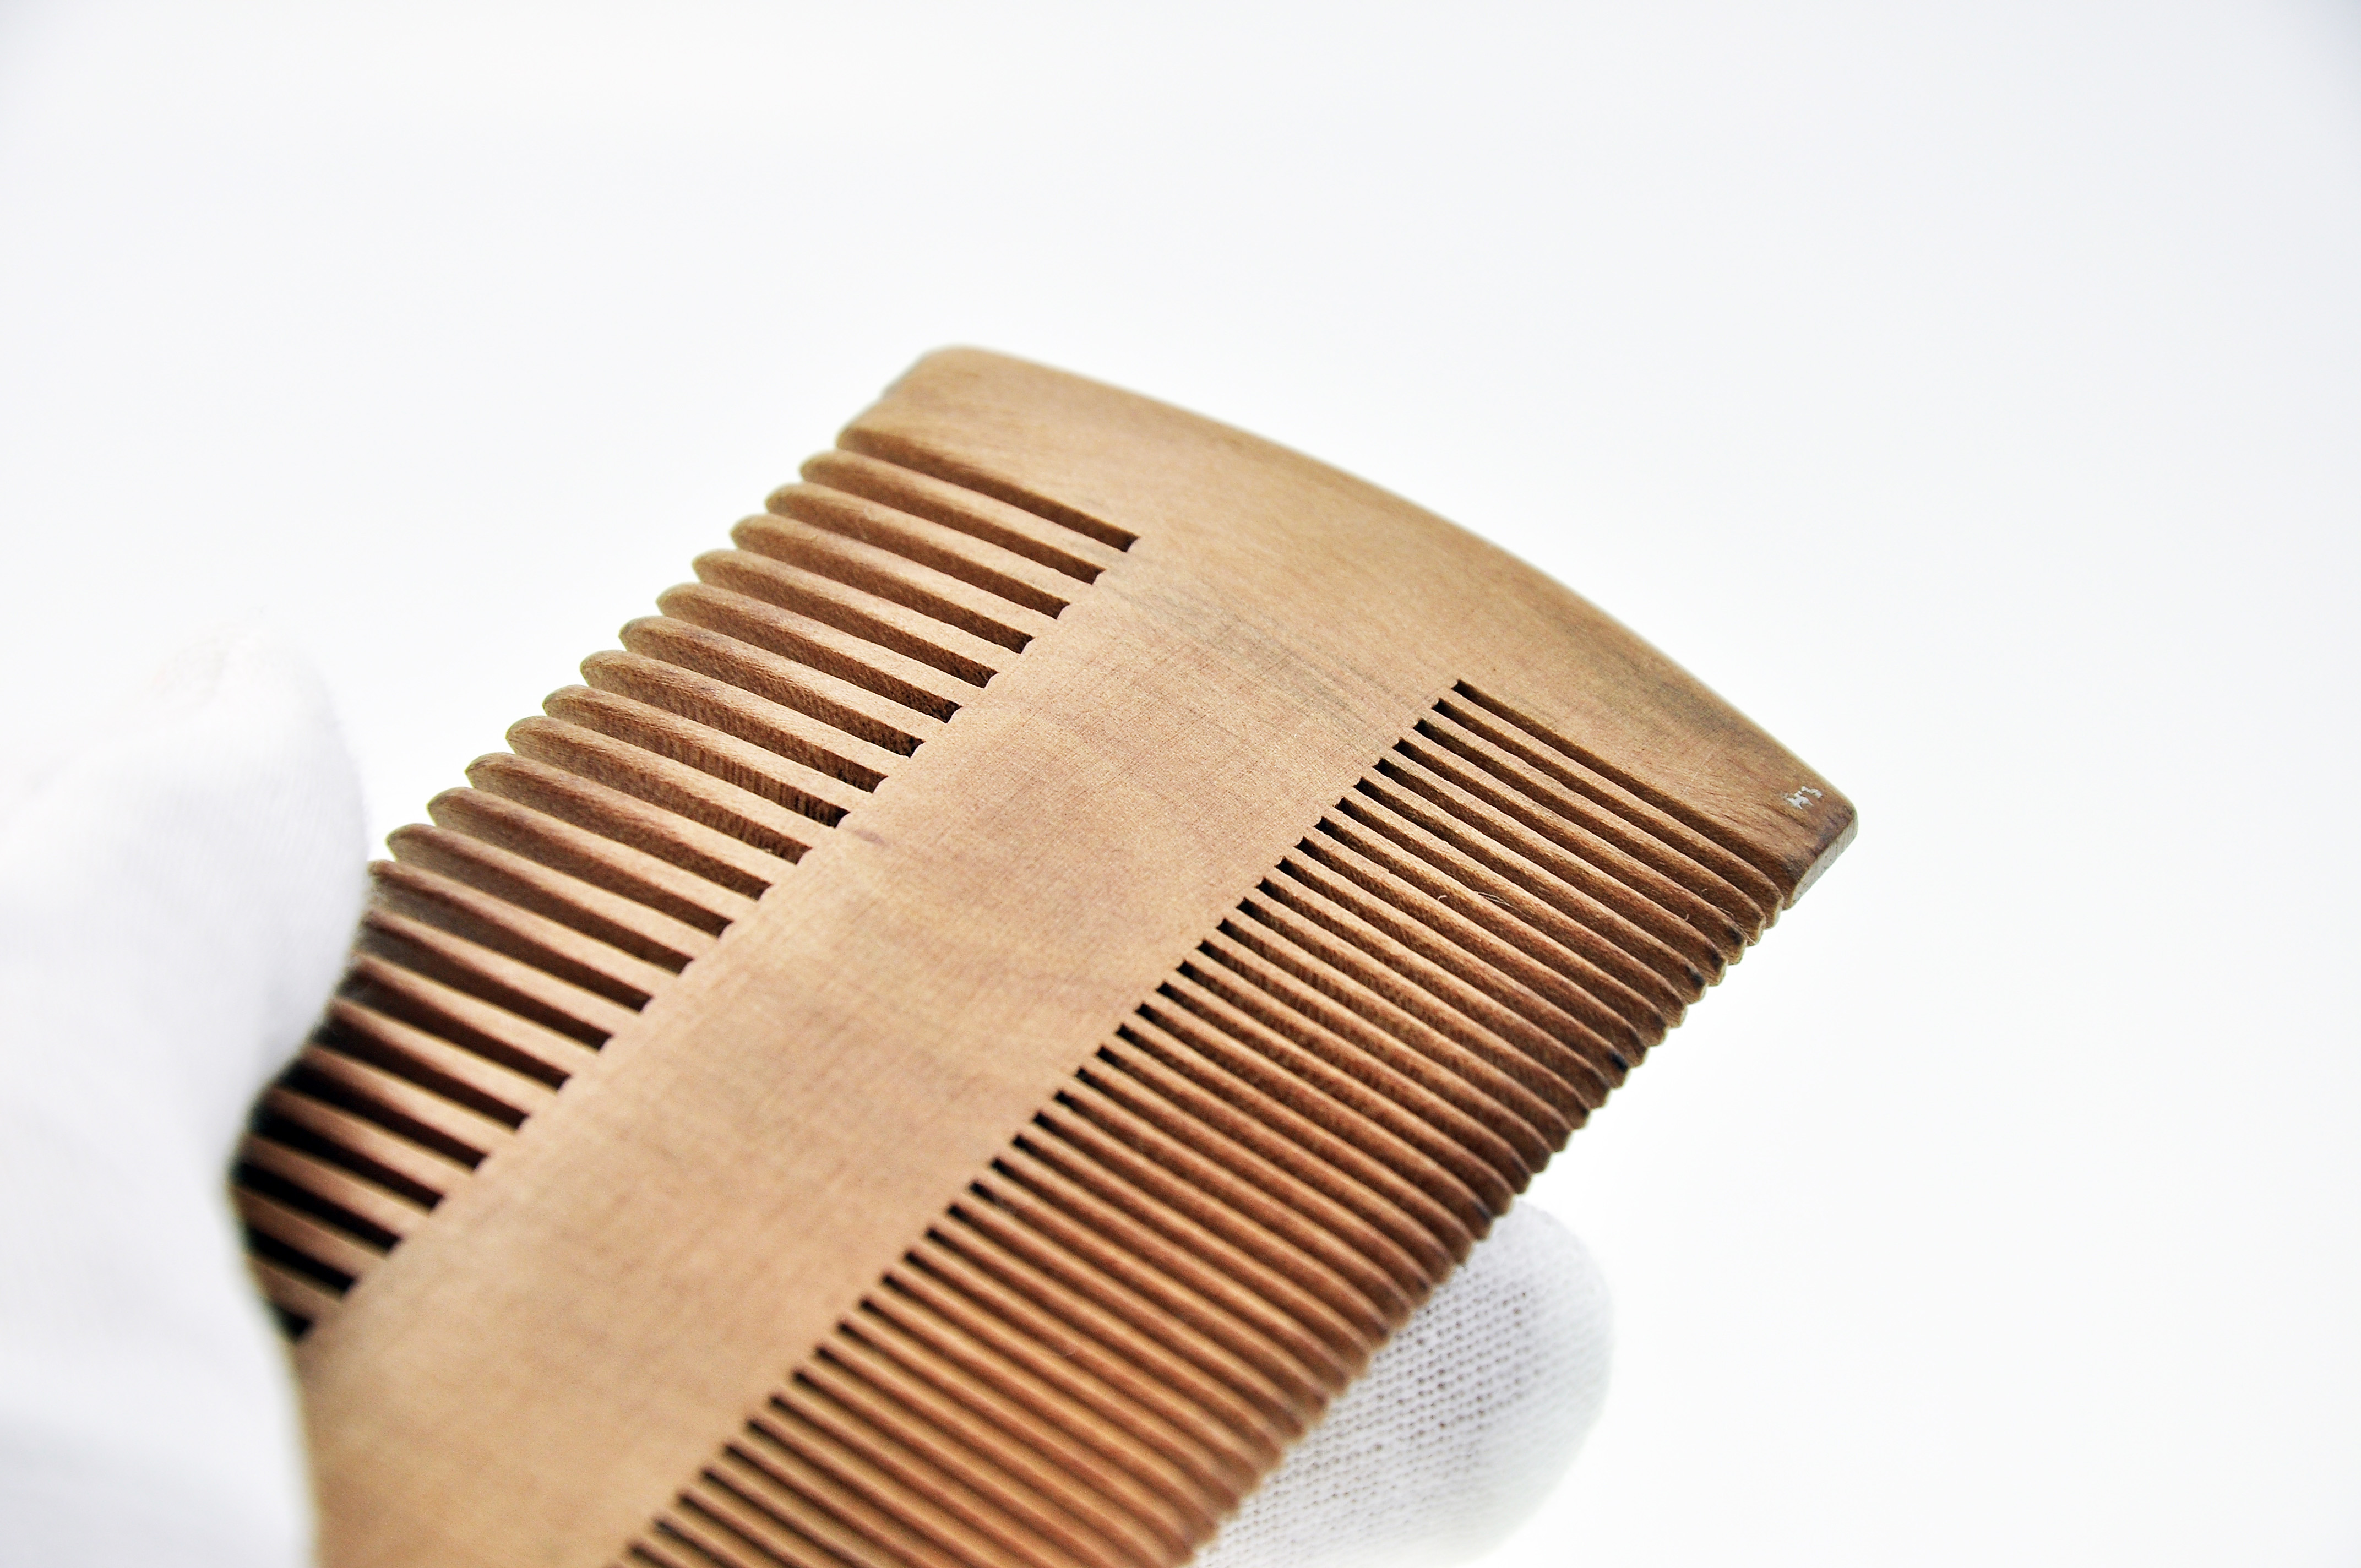 OUMO--Wholesale Customer Logo Wooden Beard Comb grooming tool